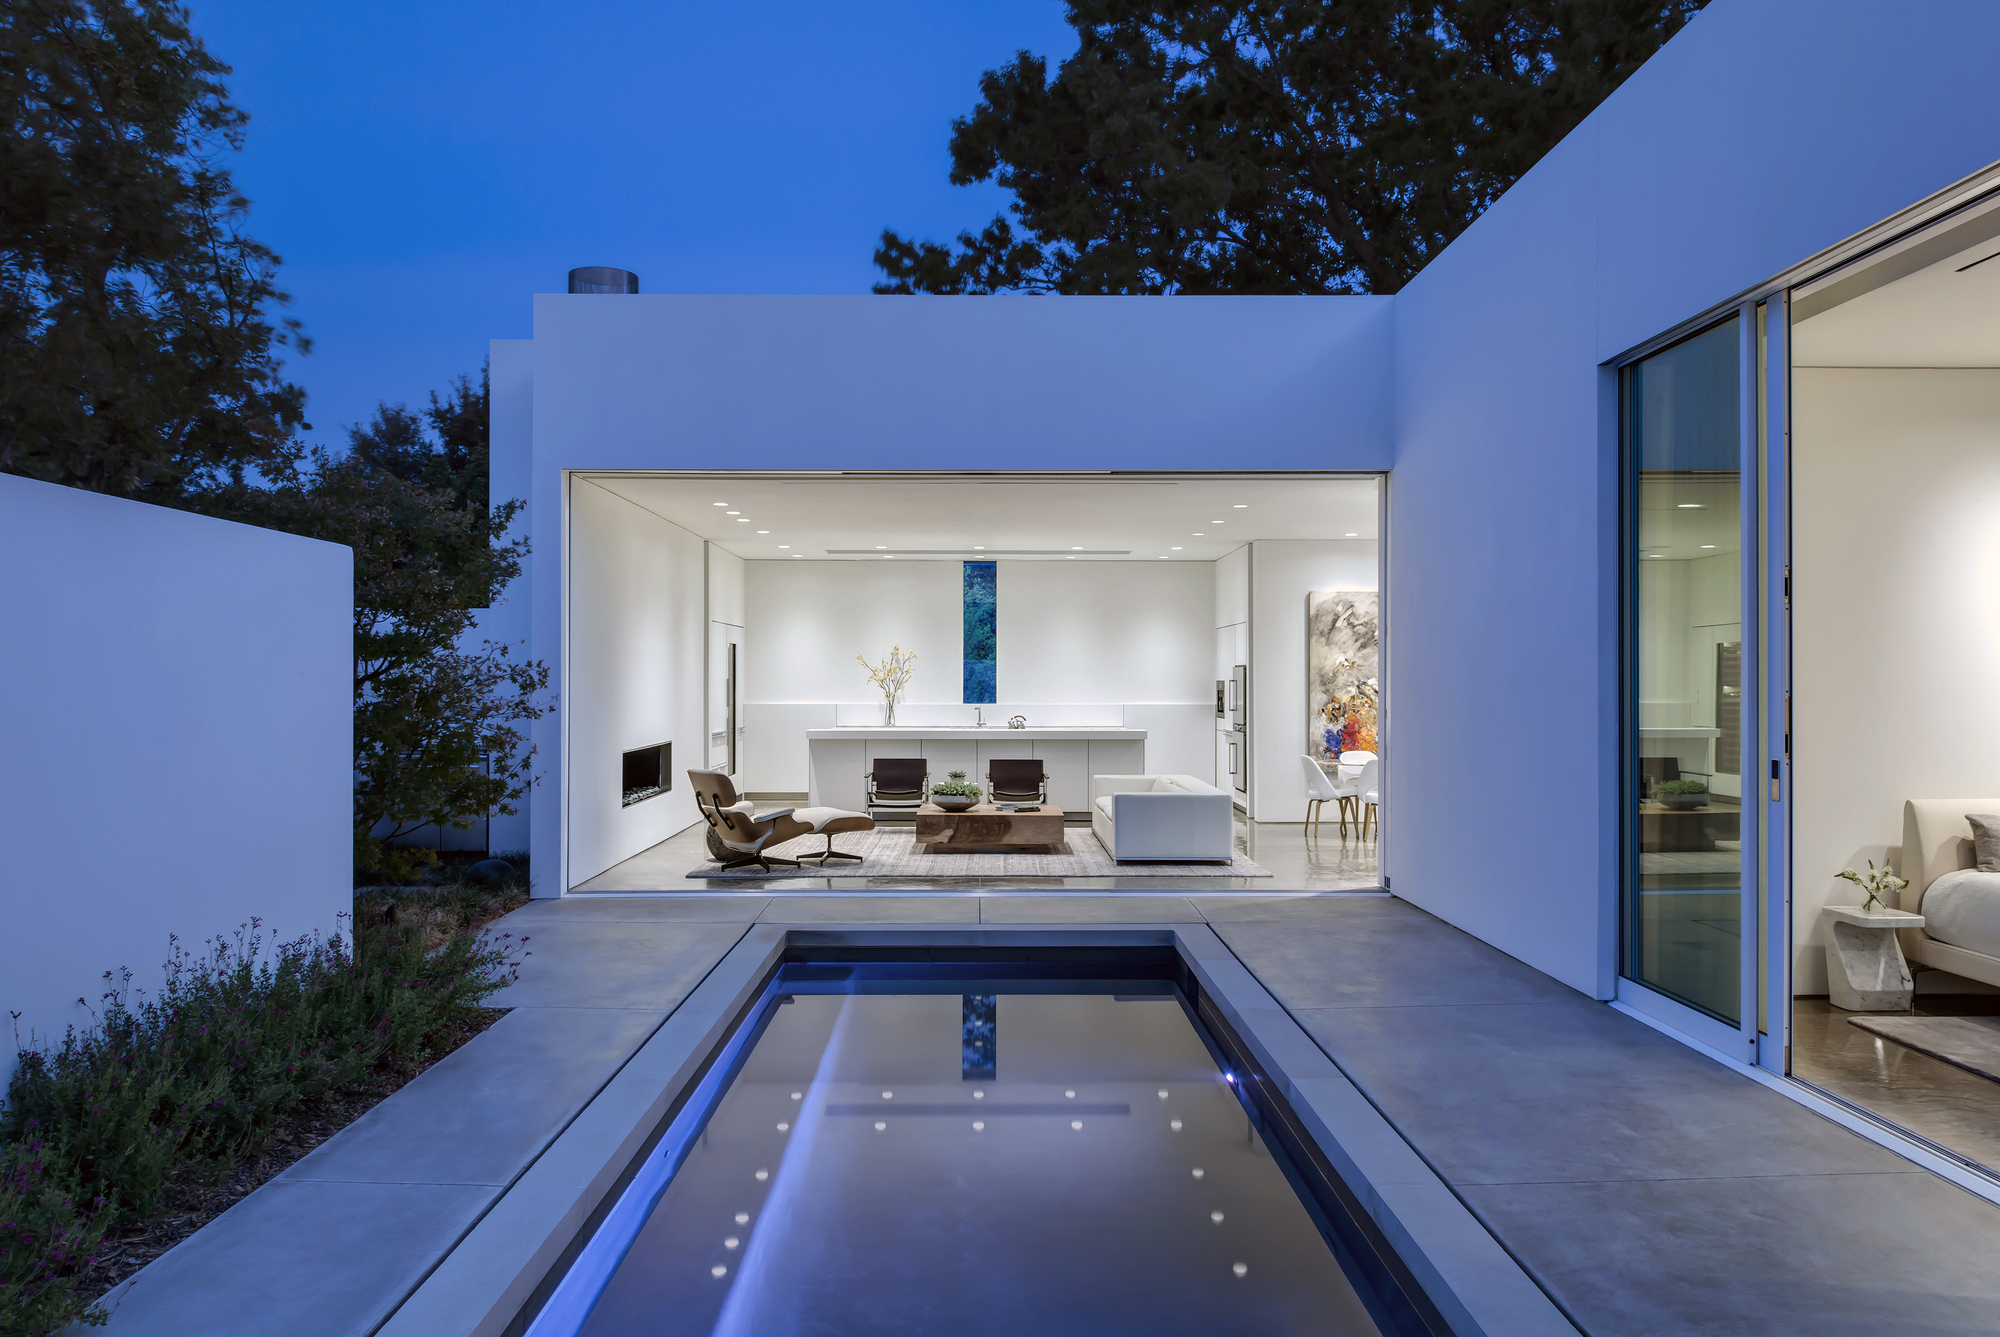 Casa di Luce Morrison Dilworth  Walls ArchDaily